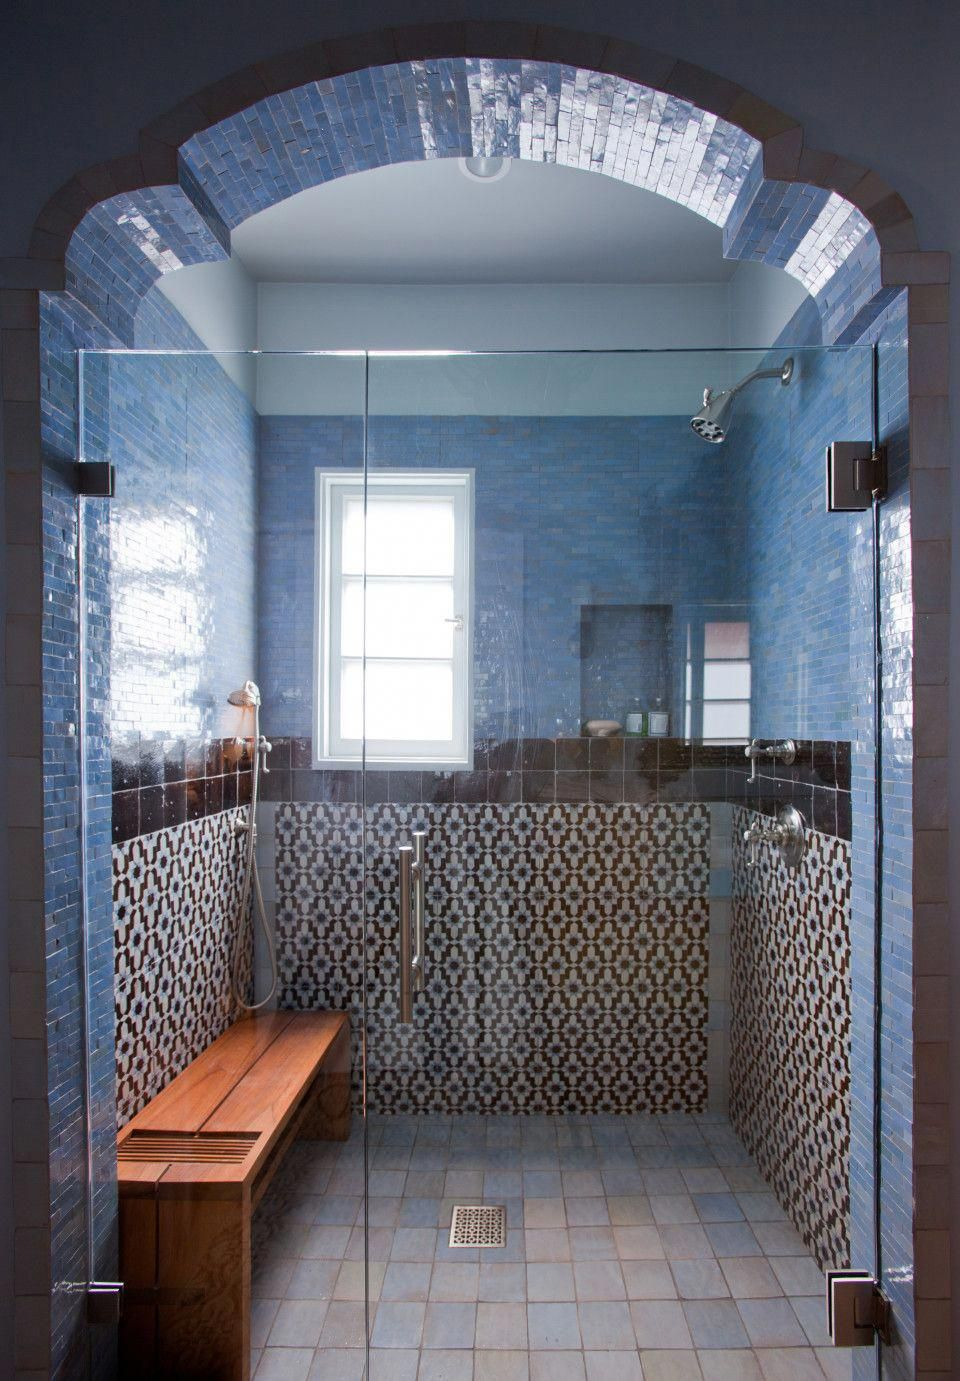 Decorating Kitchen Diners Decoratingkitchen In 2019 Moroccan